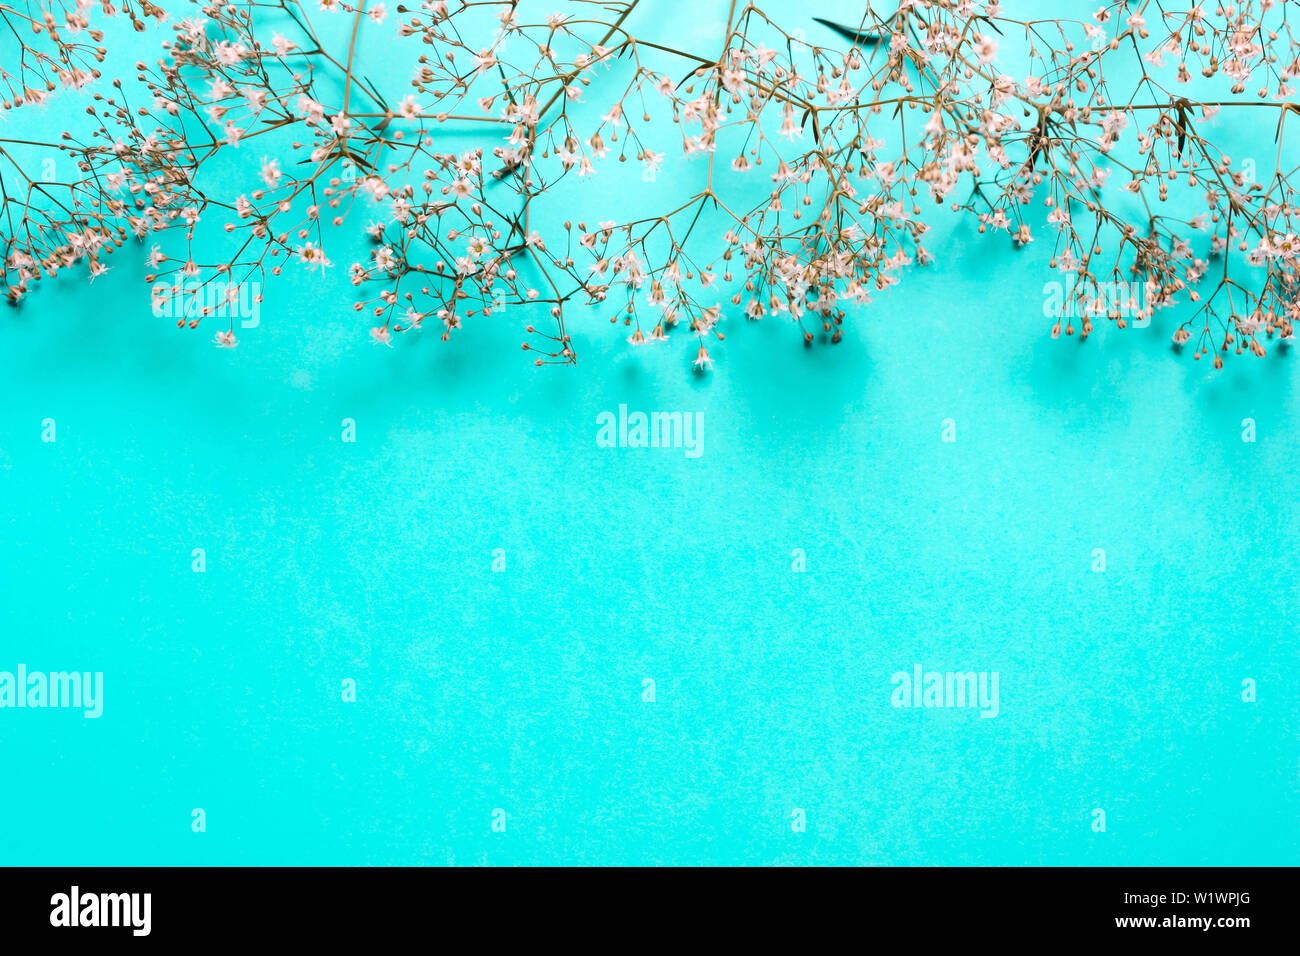 Wedding Summer Pastel Background Composition Of White Flowers On A Blue Background Flat Lay Copy Space Stock Photo Alamy